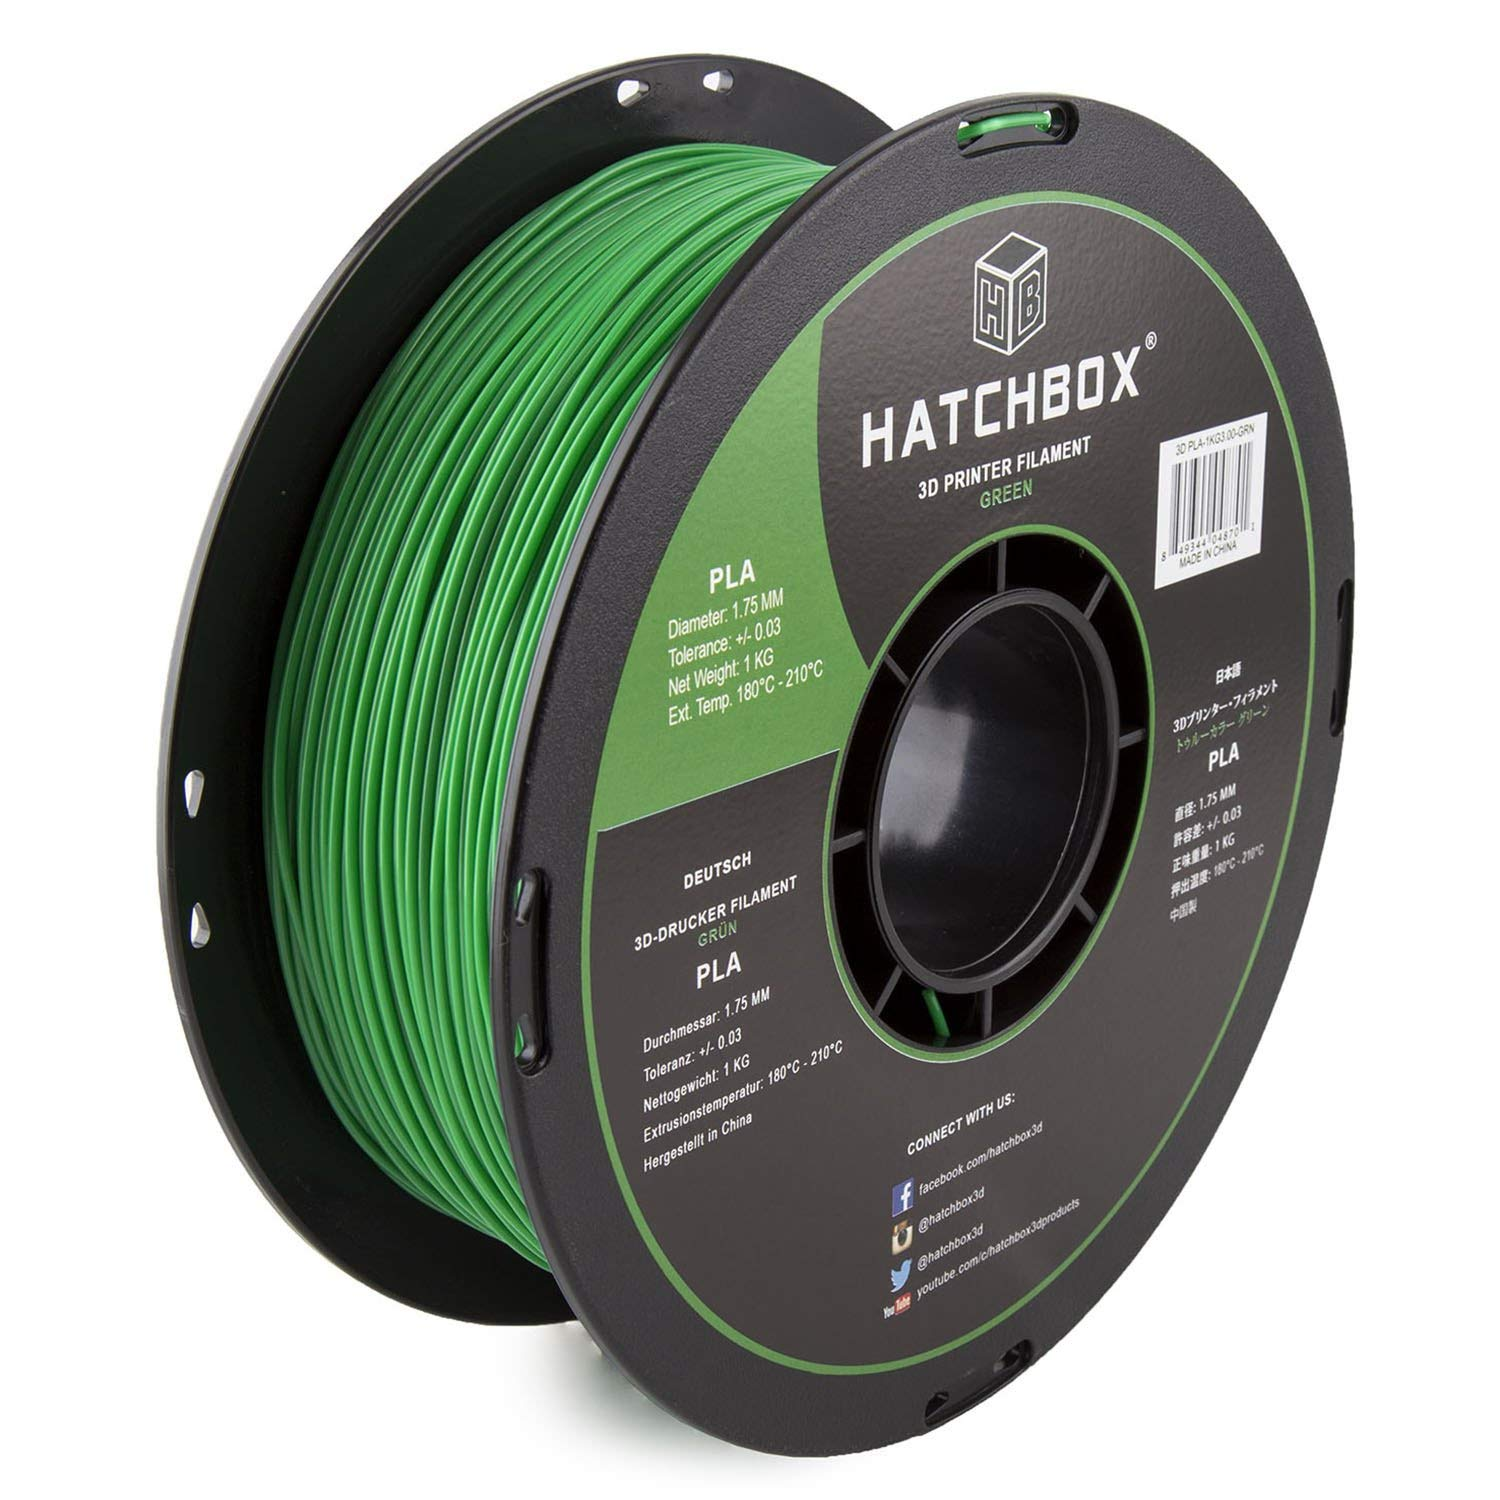 HATCHBOX PLA 3D Printer Filament, Dimensional Accuracy +/- 0.03 mm, 1 kg Spool, 1.75 mm, Green